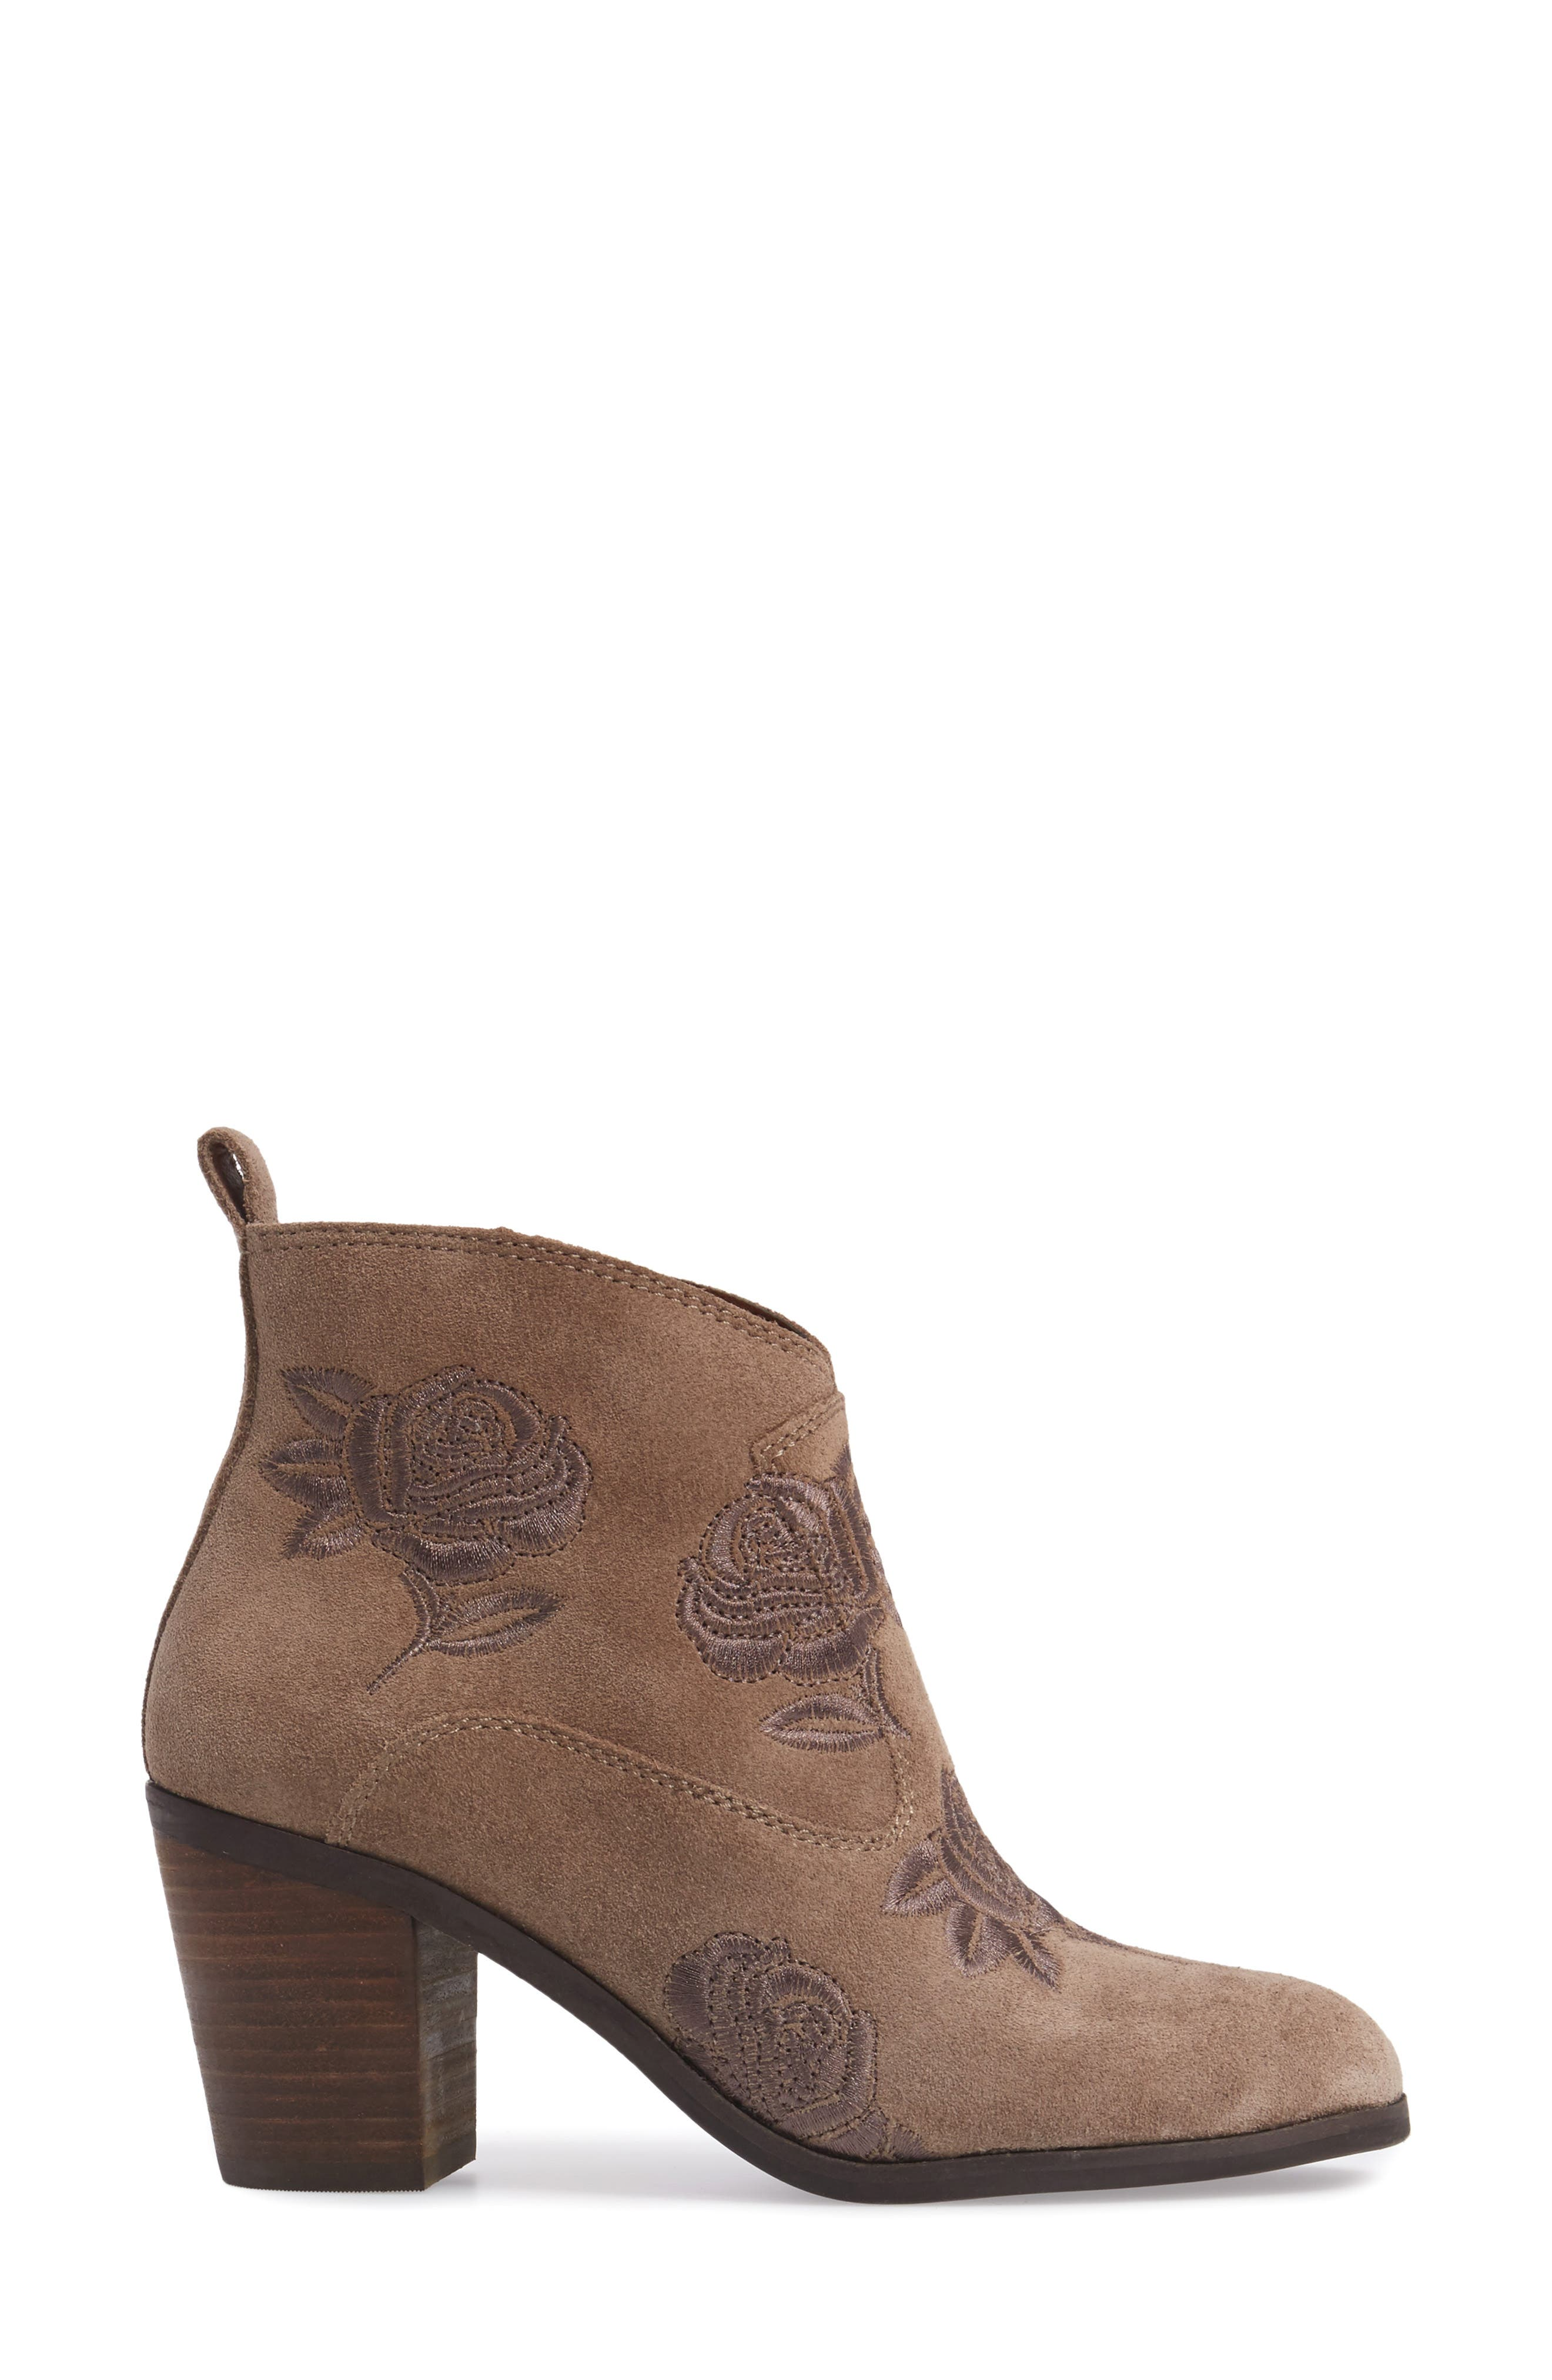 Alternate Image 3  - Lucky Brand Pexton Embroidered Bootie (Women)